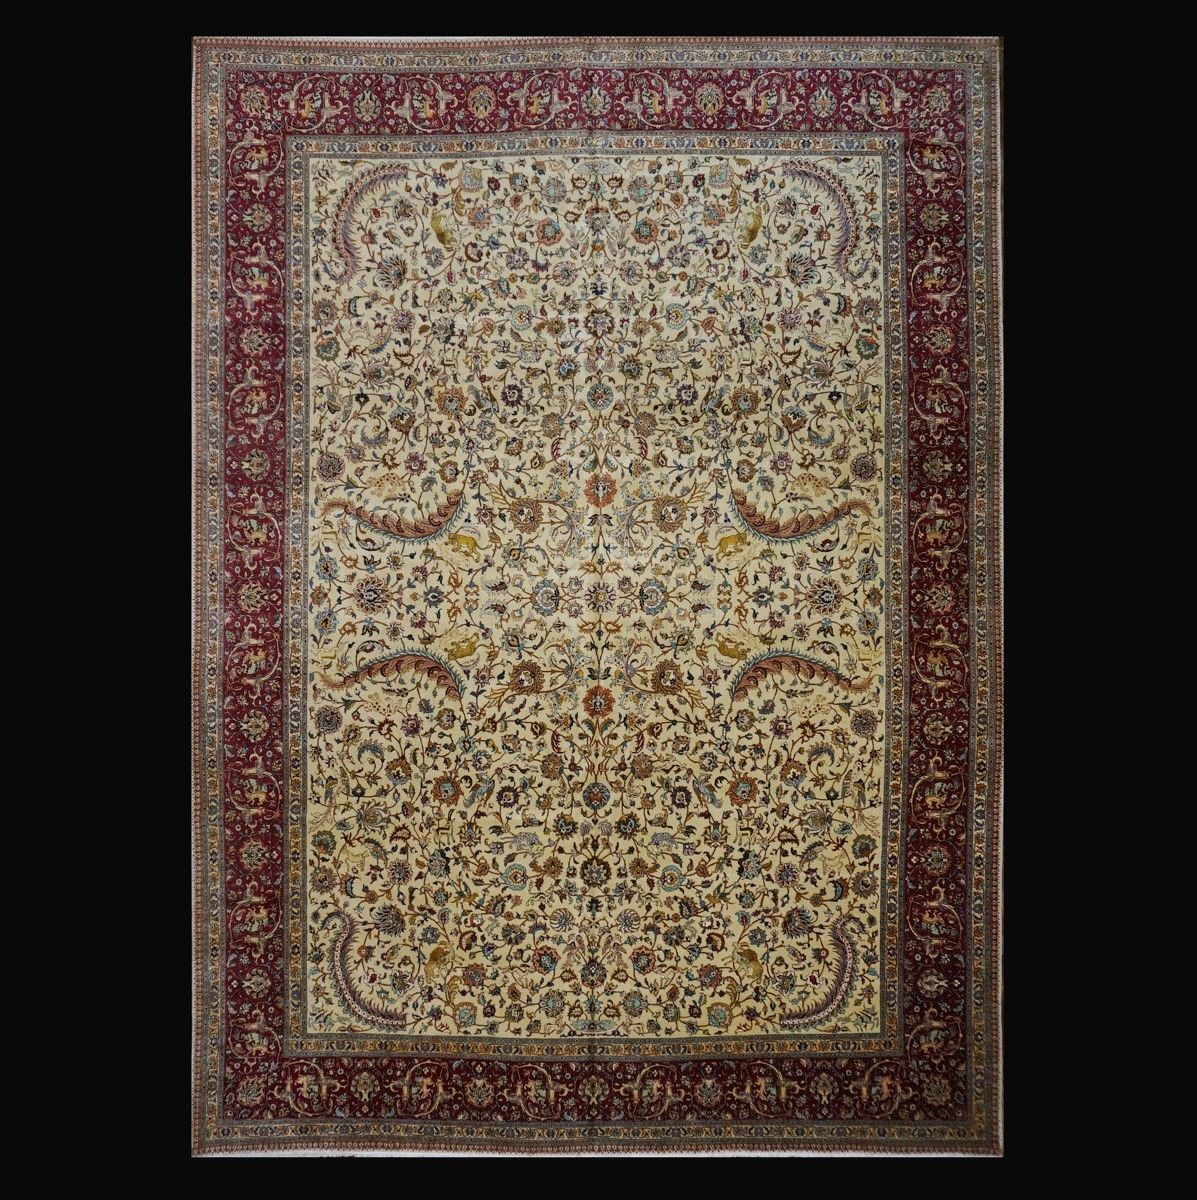 1140747 Persian Tabriz 12 2x16 9 Circa 1940 Fine Rugs Rug Cleaning Services Rug Store